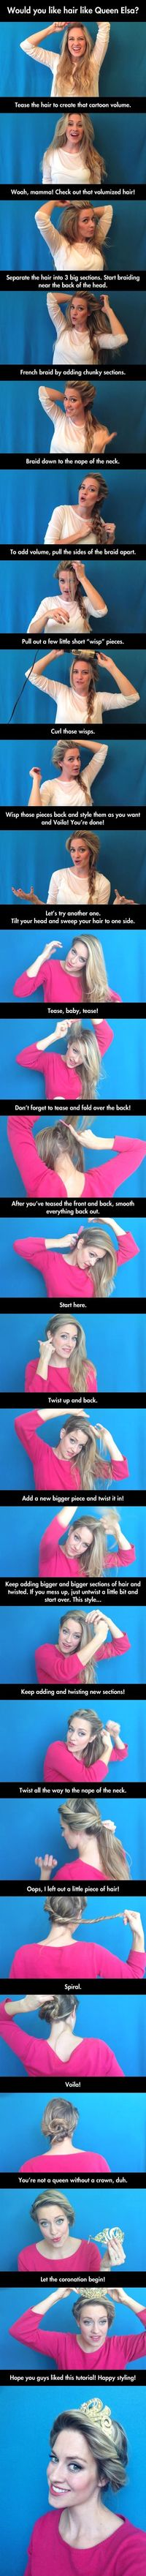 How to style your hair like Queen Elsa from Disney's Frozen - grow my hair out a few more months